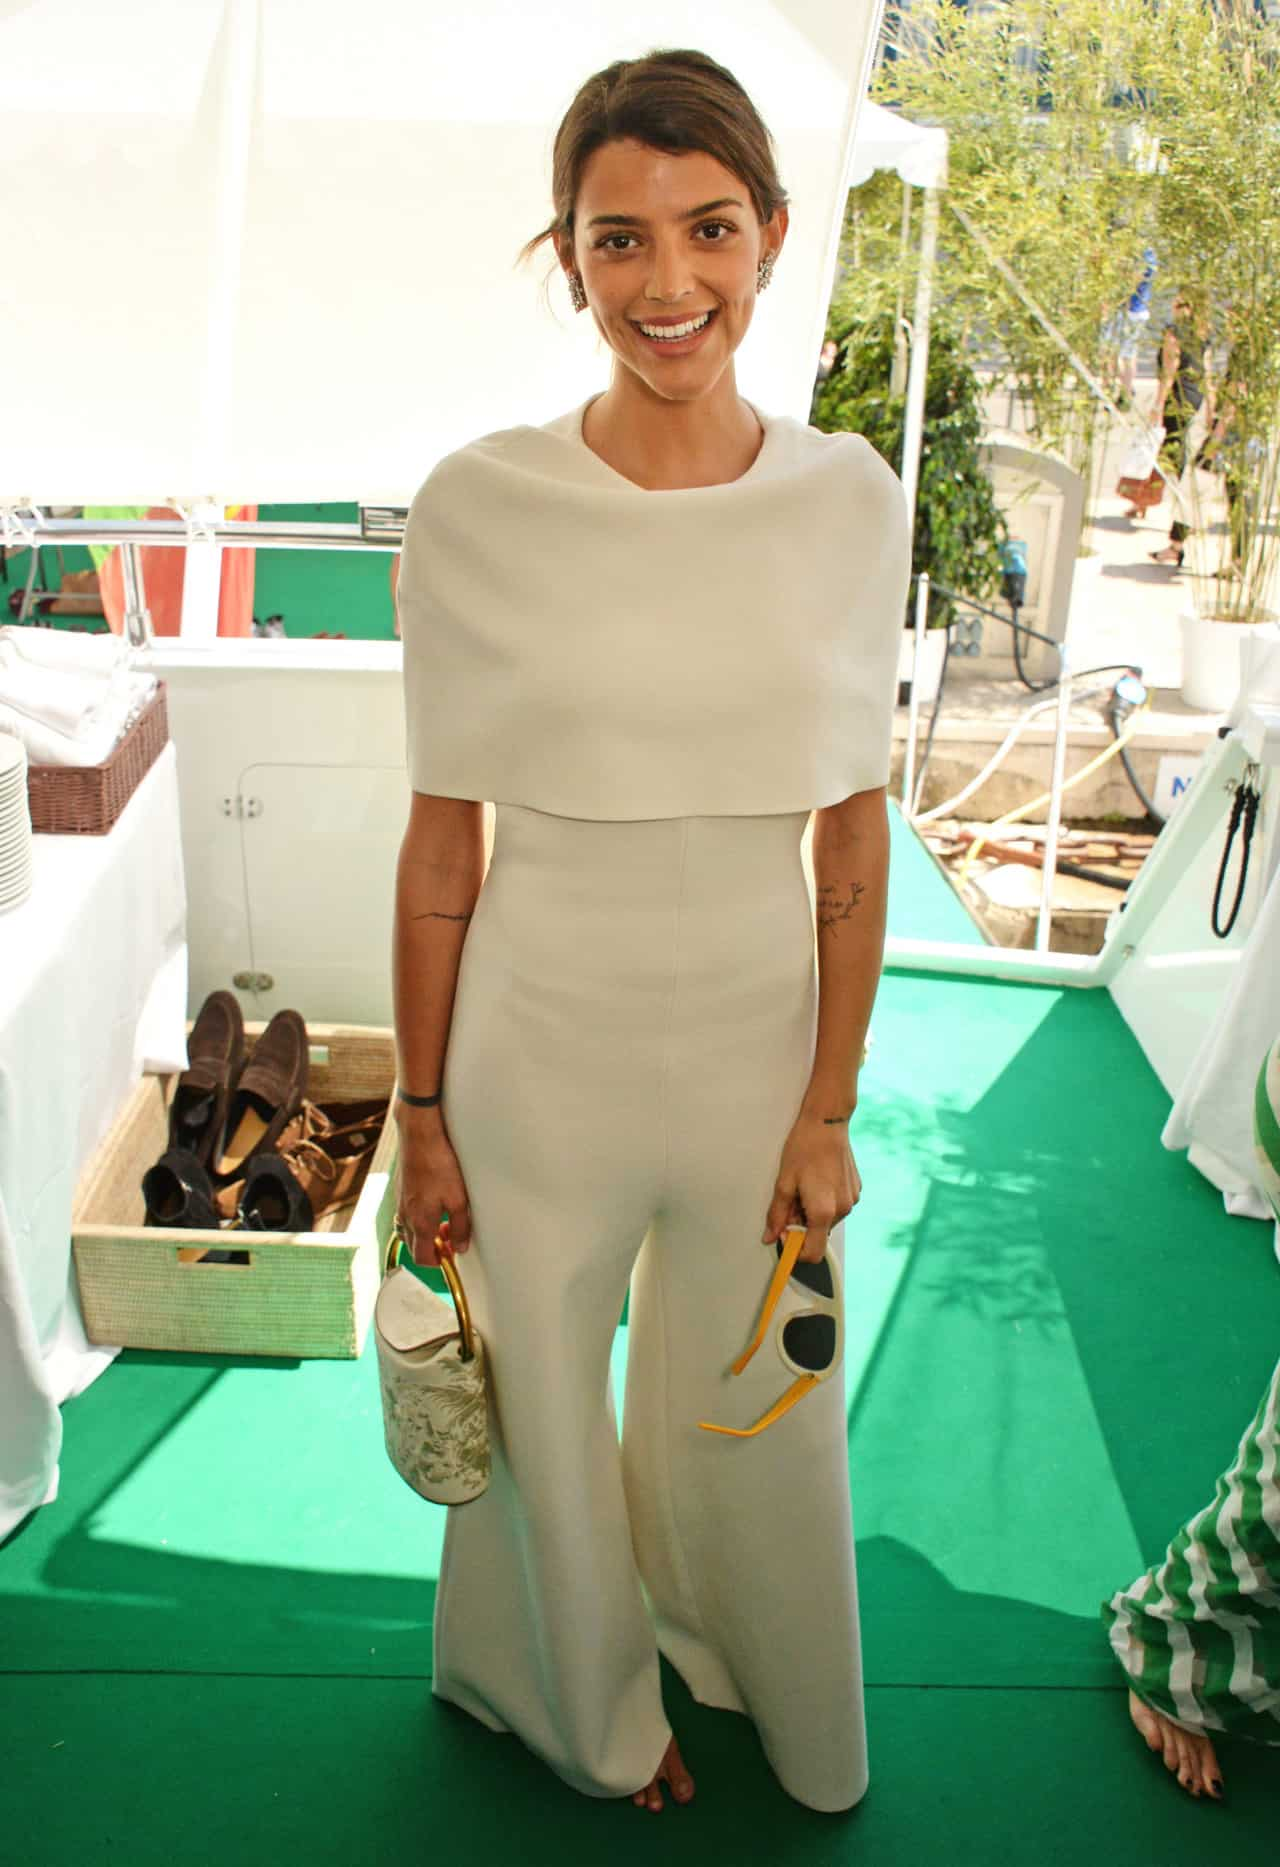 CANNES, FRANCE - MAY 14:  Calu Rivero attends a private lunch hosted by Colin Firth, Livia Firth and Chopard to celebrate the journey to sustainable luxury during the Cannes Film Festival 2016 aboard The Silver Reel on May 14, 2016 in Cannes, France.   Photo Credit: Dave Benett